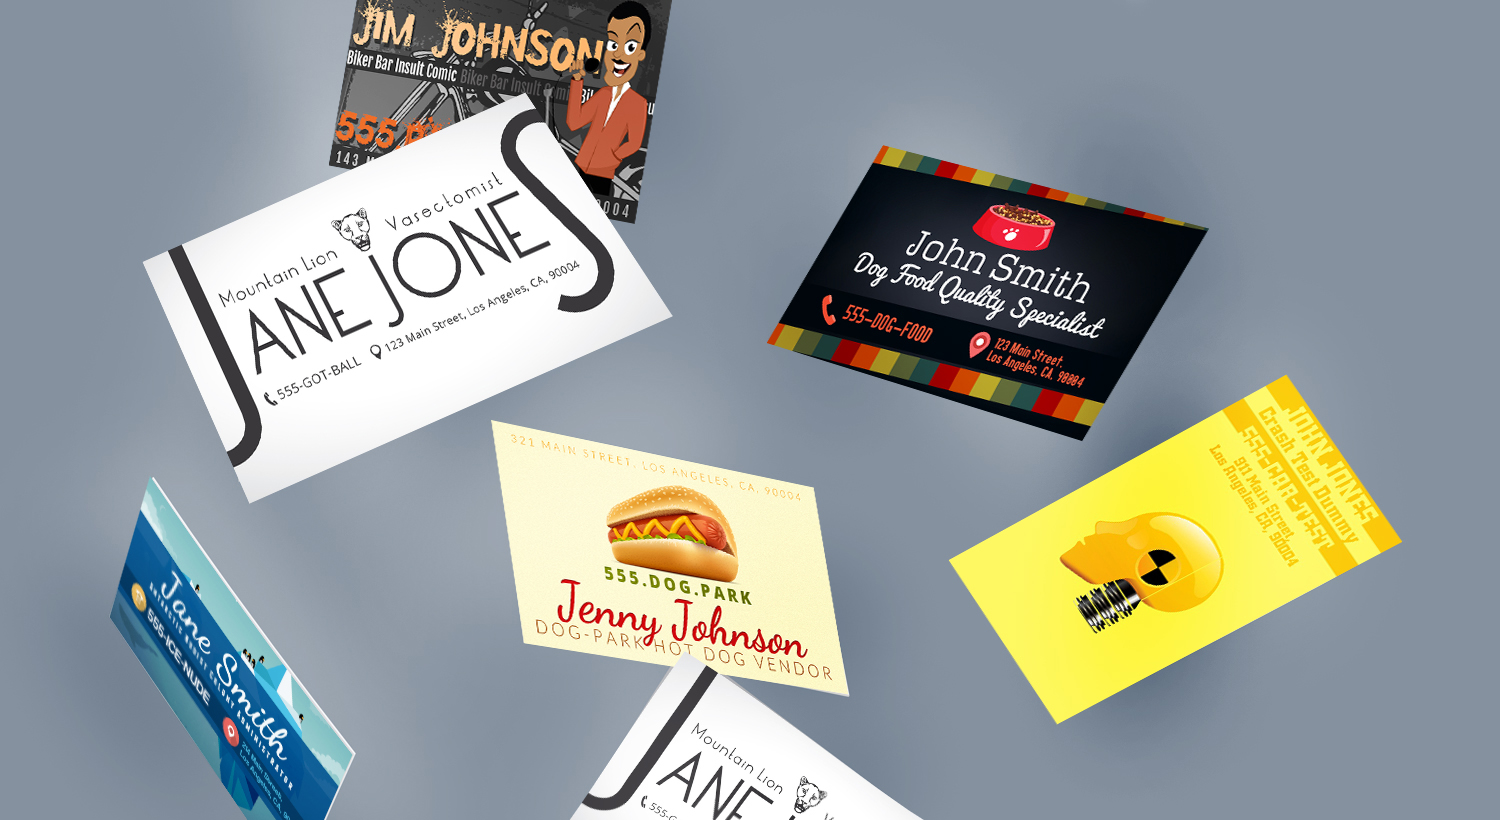 Printed Business Cards for the Worst Jobs Ever